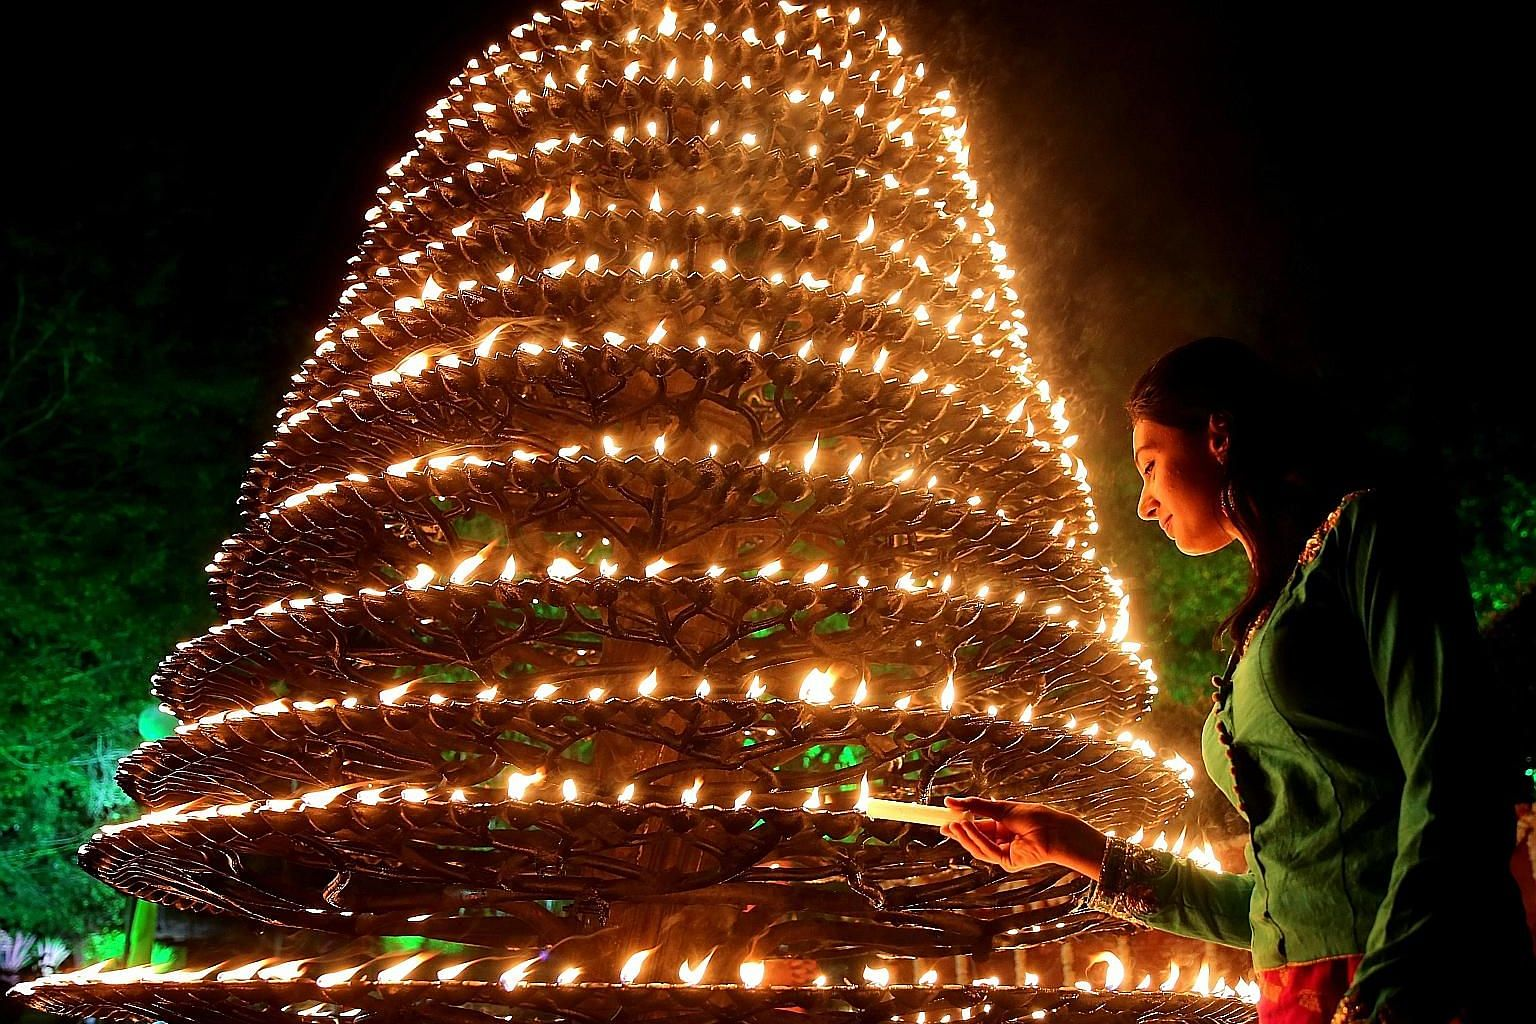 The traditional lamp of Kerala which has 1,001 wicks, known as Aal Vilakku, being lit to mark the 41st foundation day of Indira Gandhi Rashtriya Manav Sangrahalaya in Bhopal, India, on Tuesday. Indira Gandhi Rashtriya Manav Sangrahalaya, a museum by